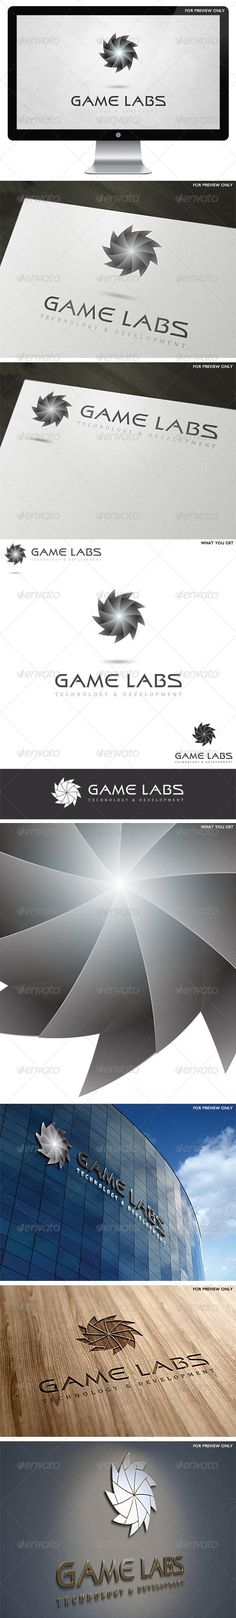 3D Game Labs Logo Template v2 - 3d Abstract  https://graphicriver.net/item/3d-game-labs-logo-template-v3/4601103?ref=231267